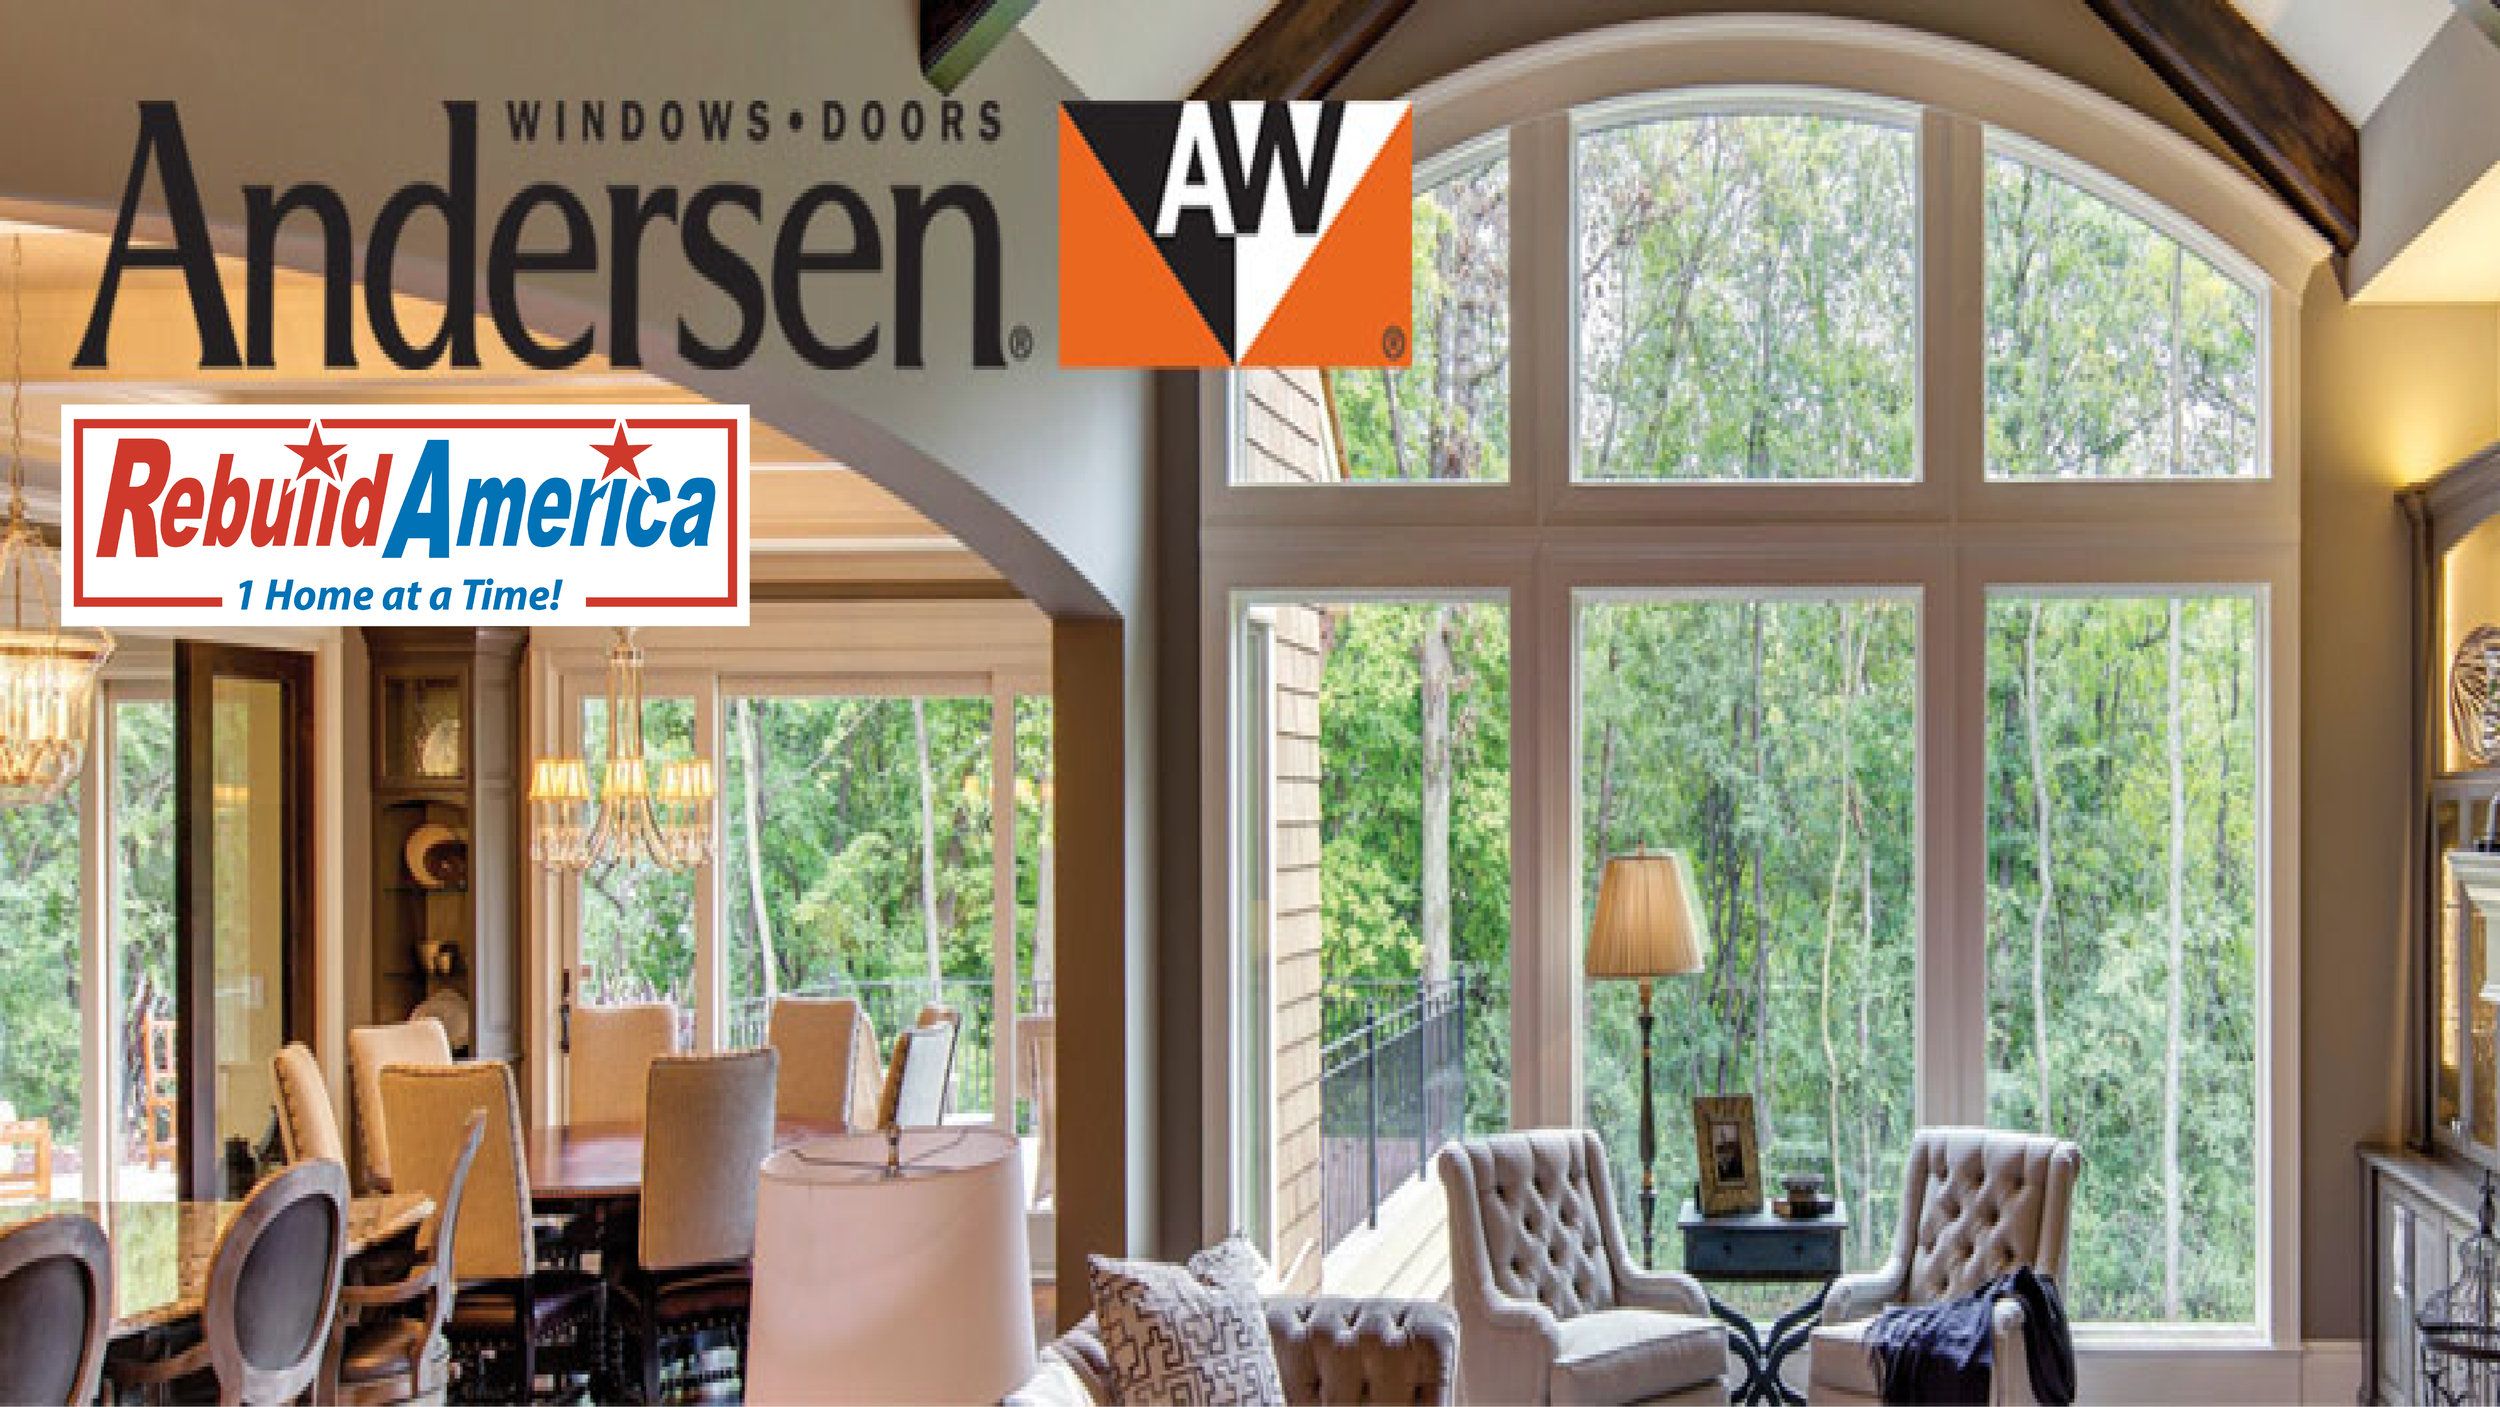 Anderson catalog photo w logo.jpg